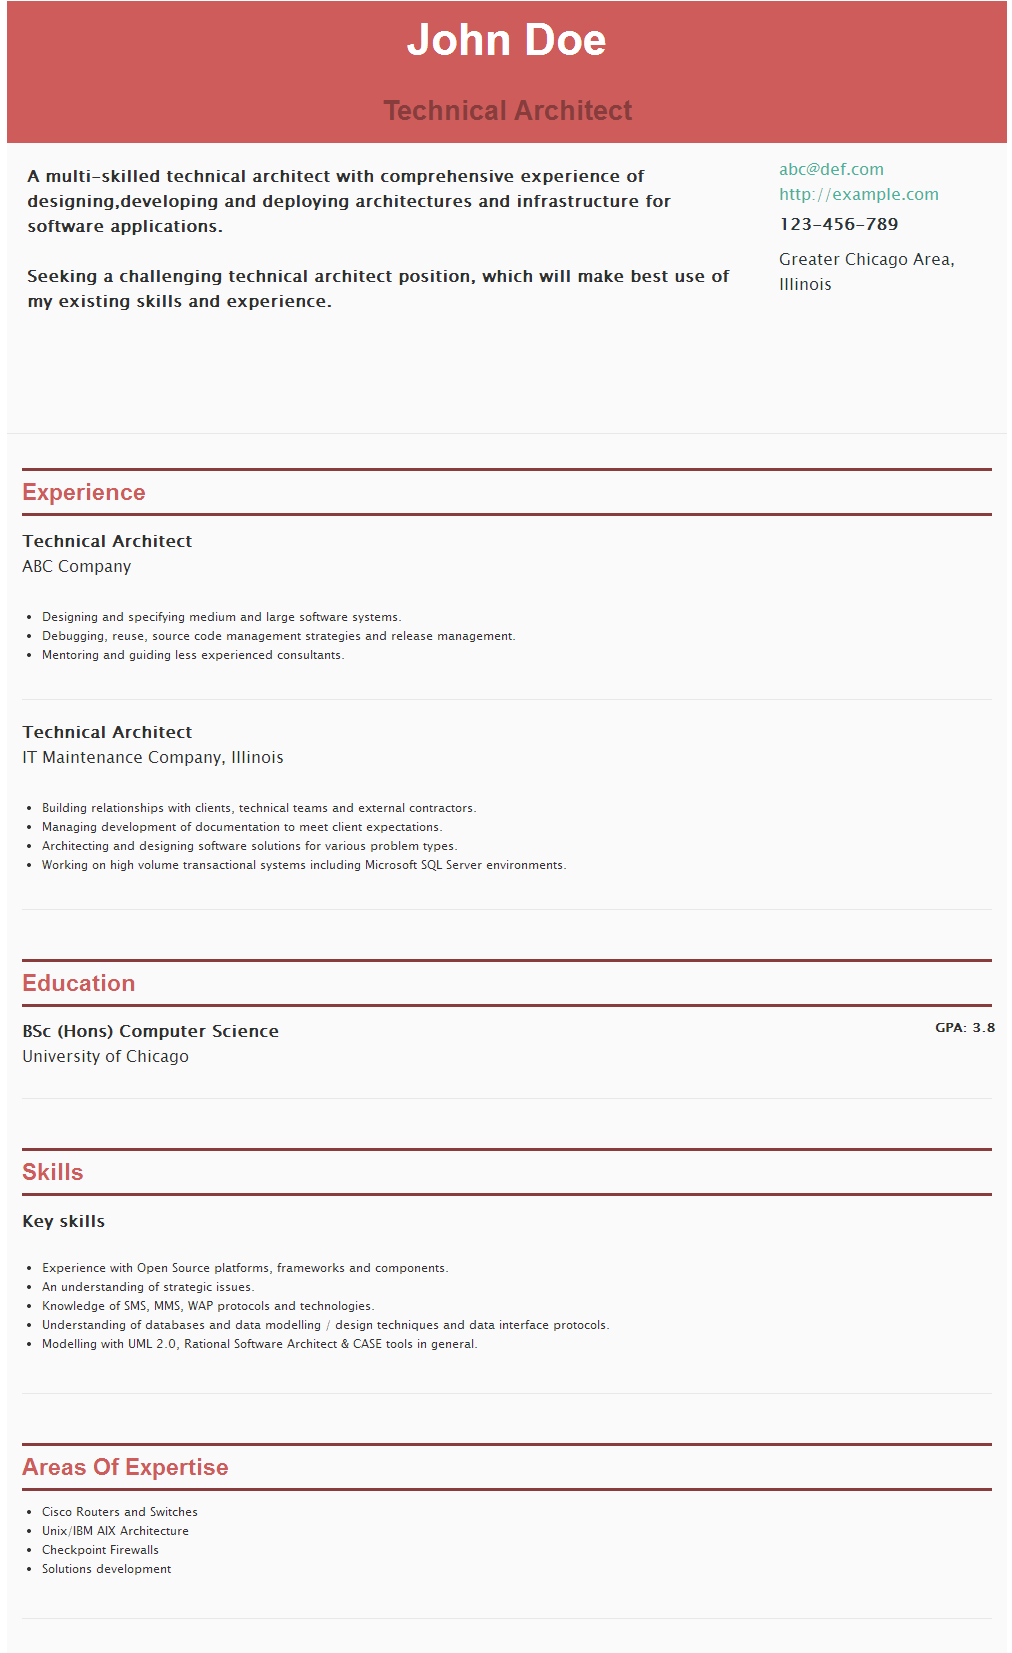 Resume For Technical Architect Https Hipcv Com Abc R Technical